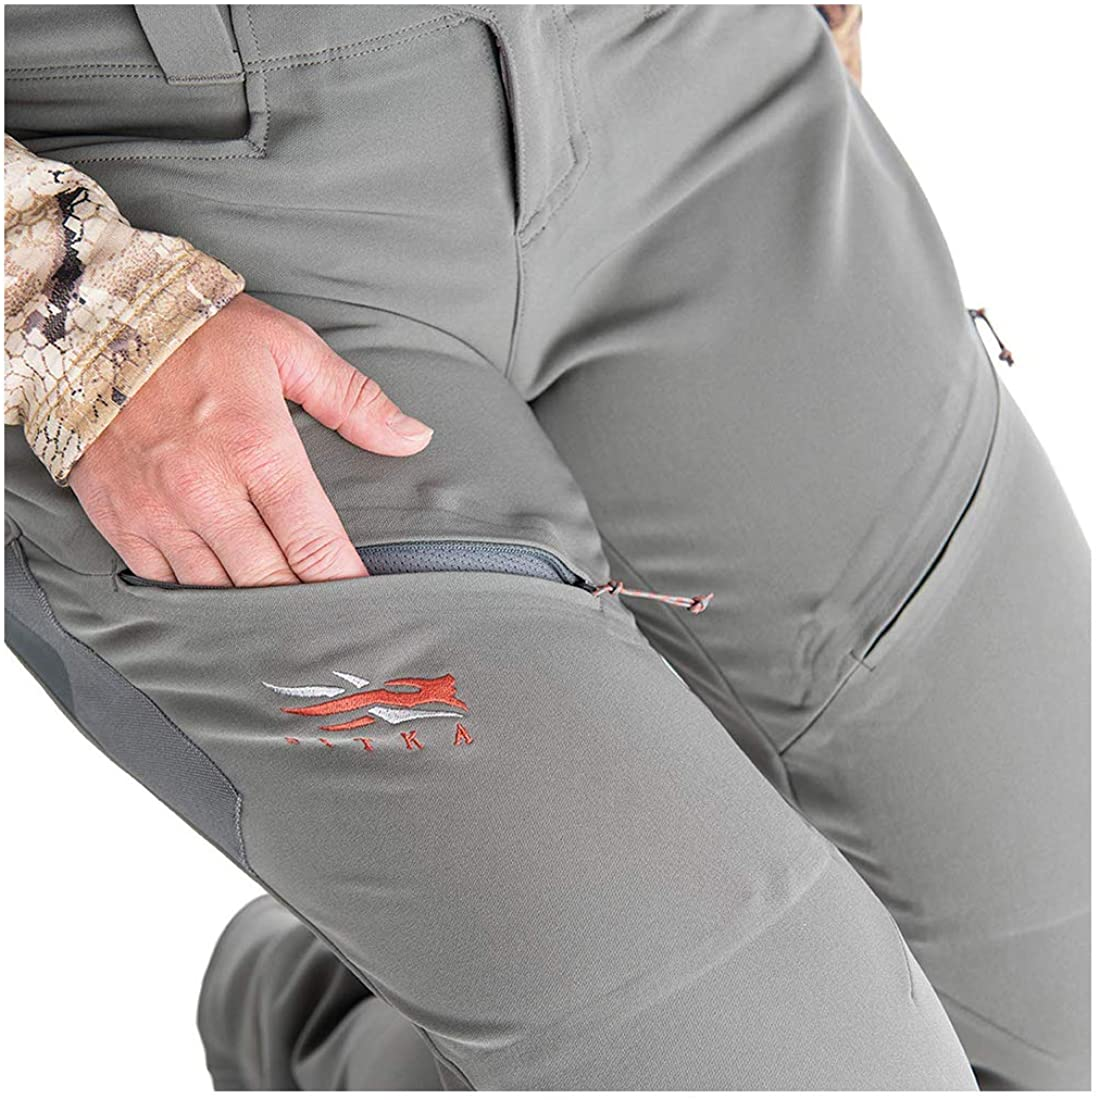 SITKA Women's Hunting Mid-Layer Durable Pocketed Cadence Pant